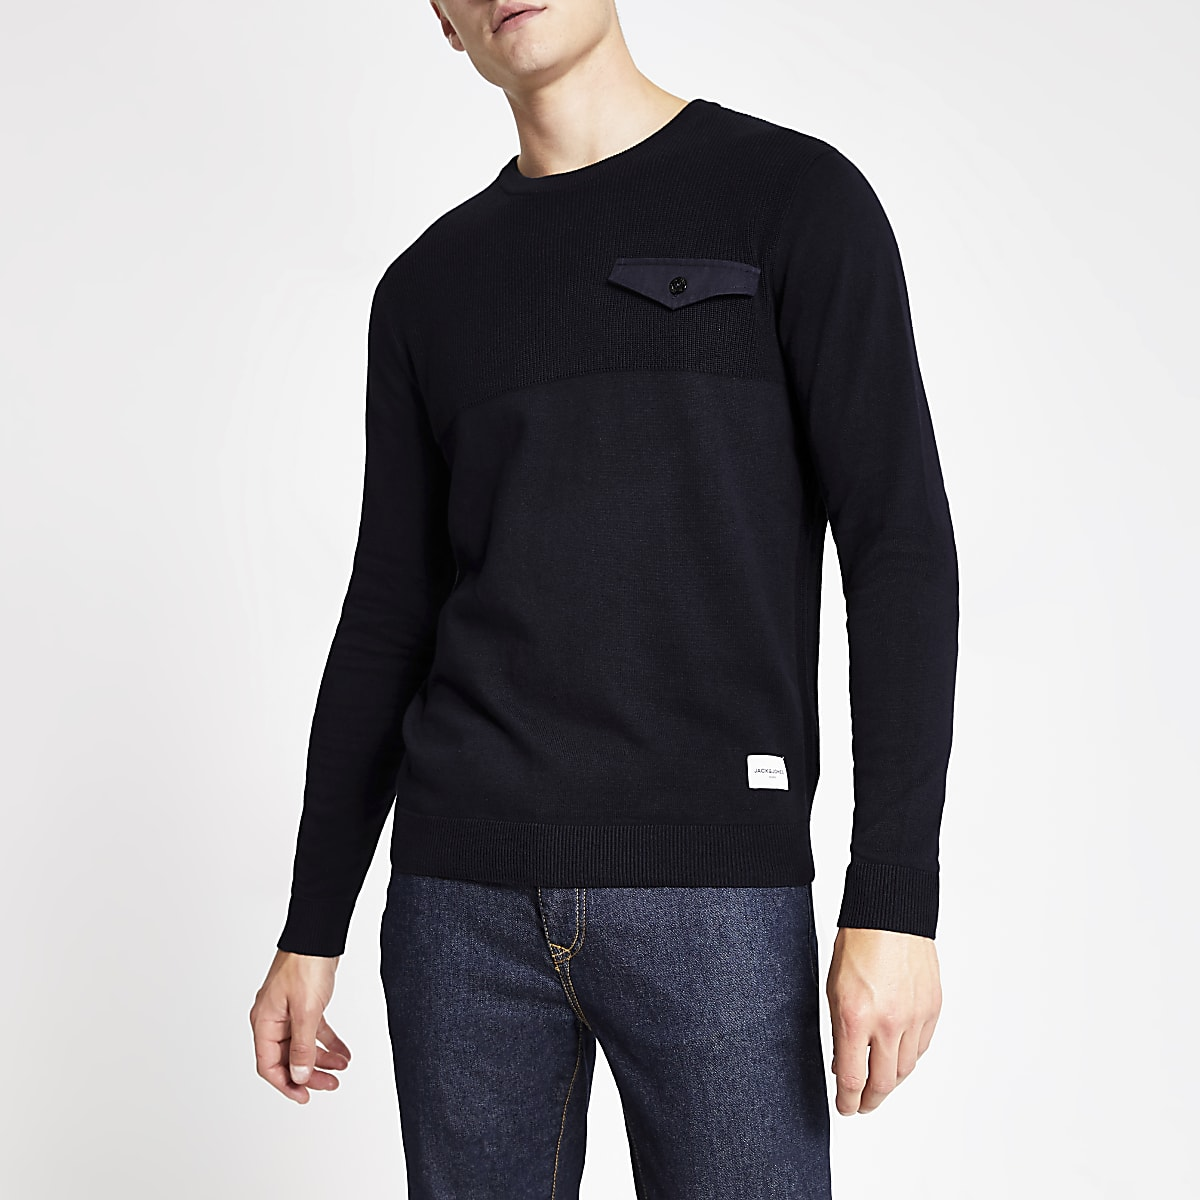 Jack and Jones navy knitted jumper